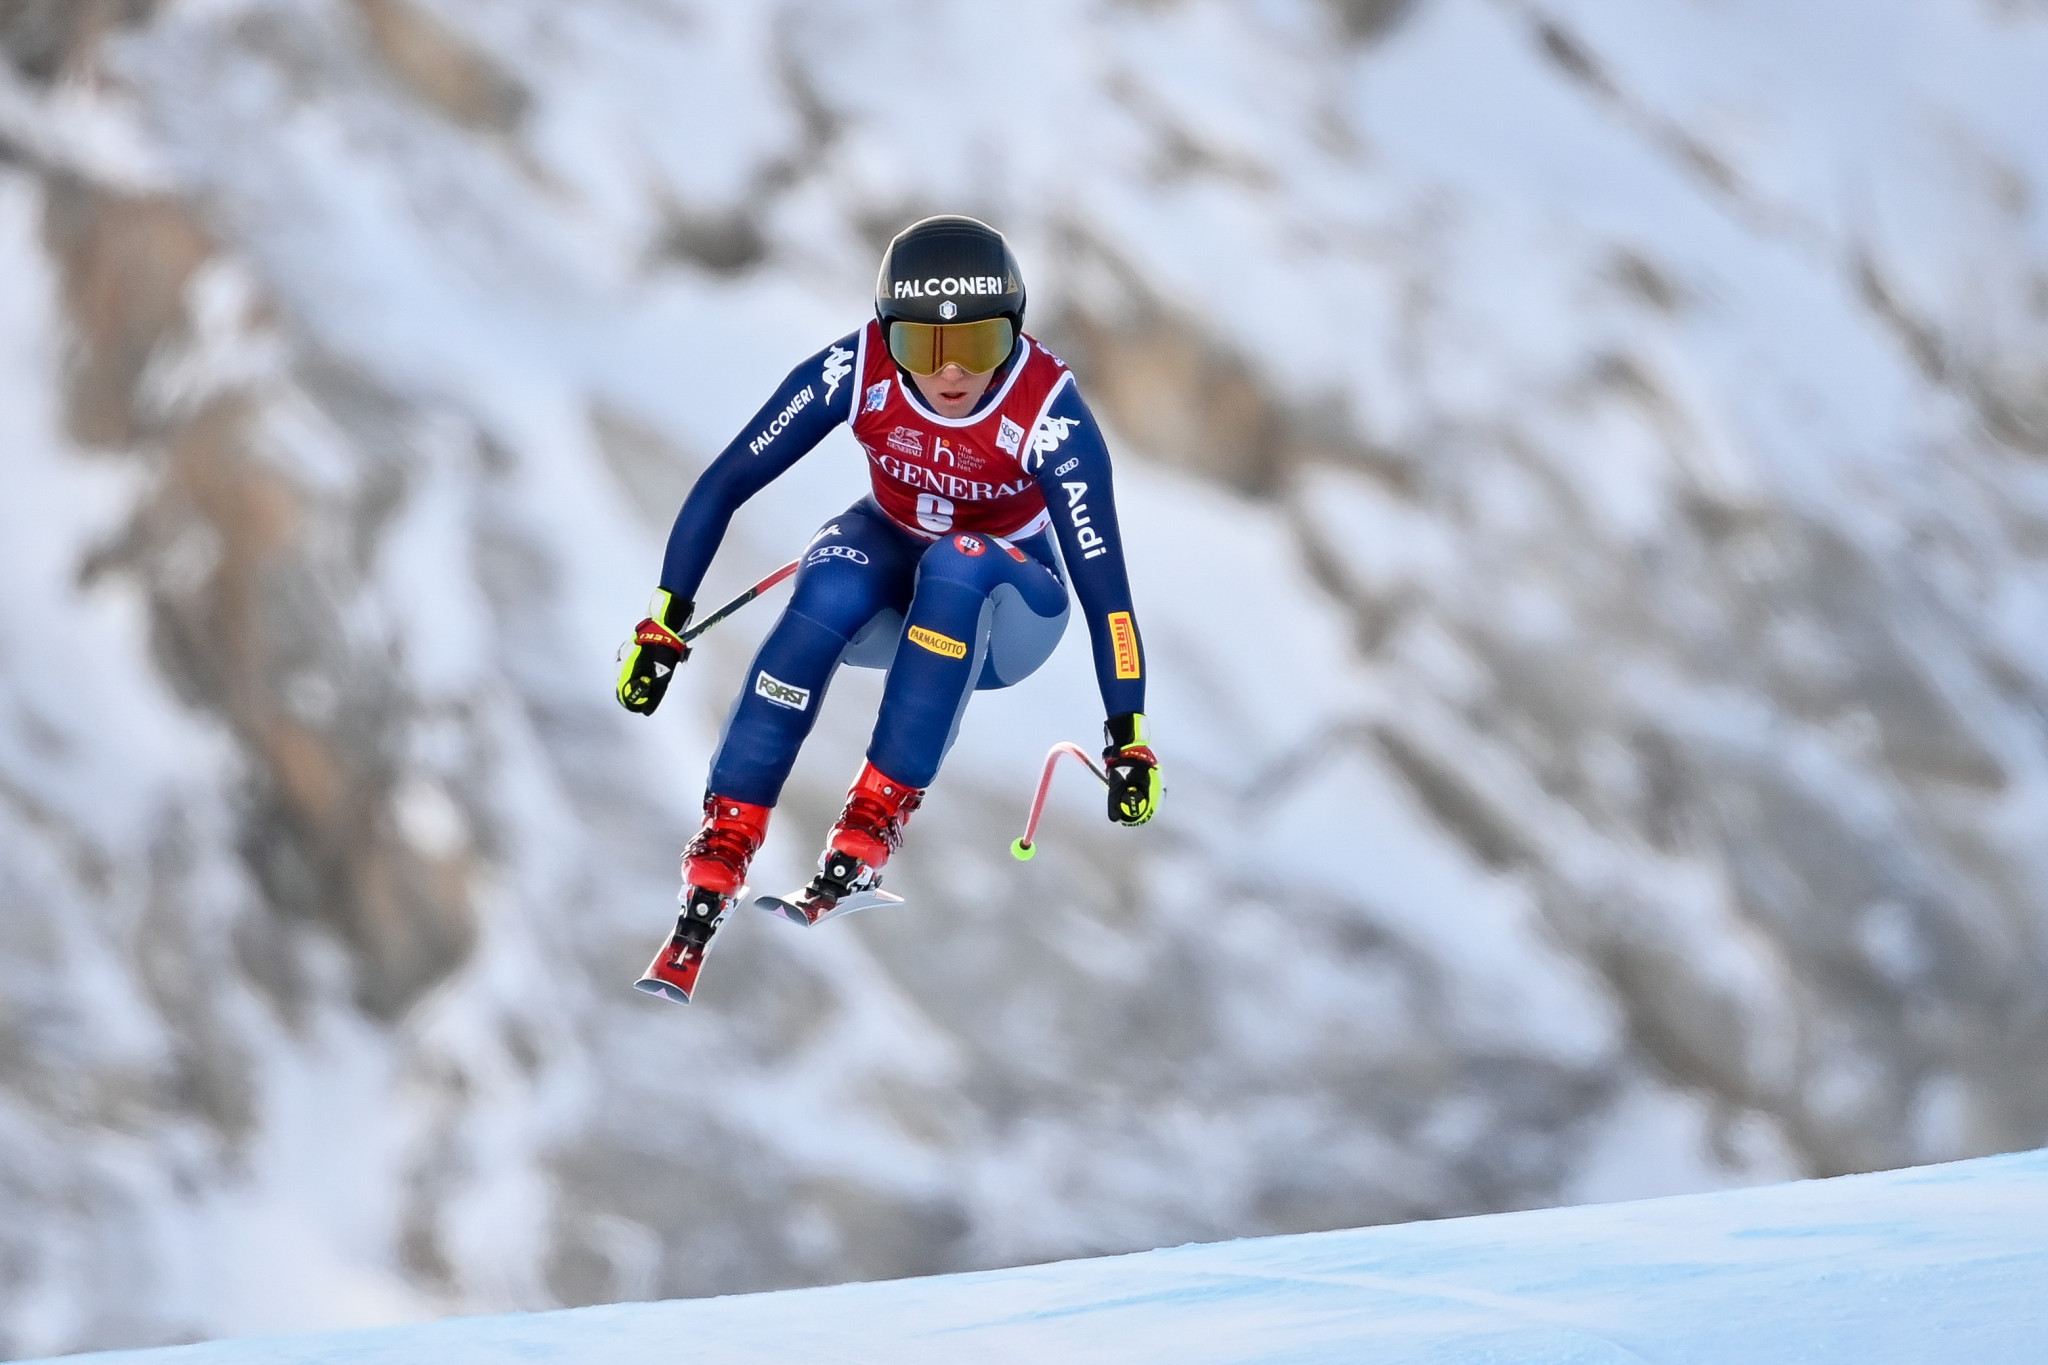 Olympic downhill champion Goggia pips Suter in Val-d'Isère